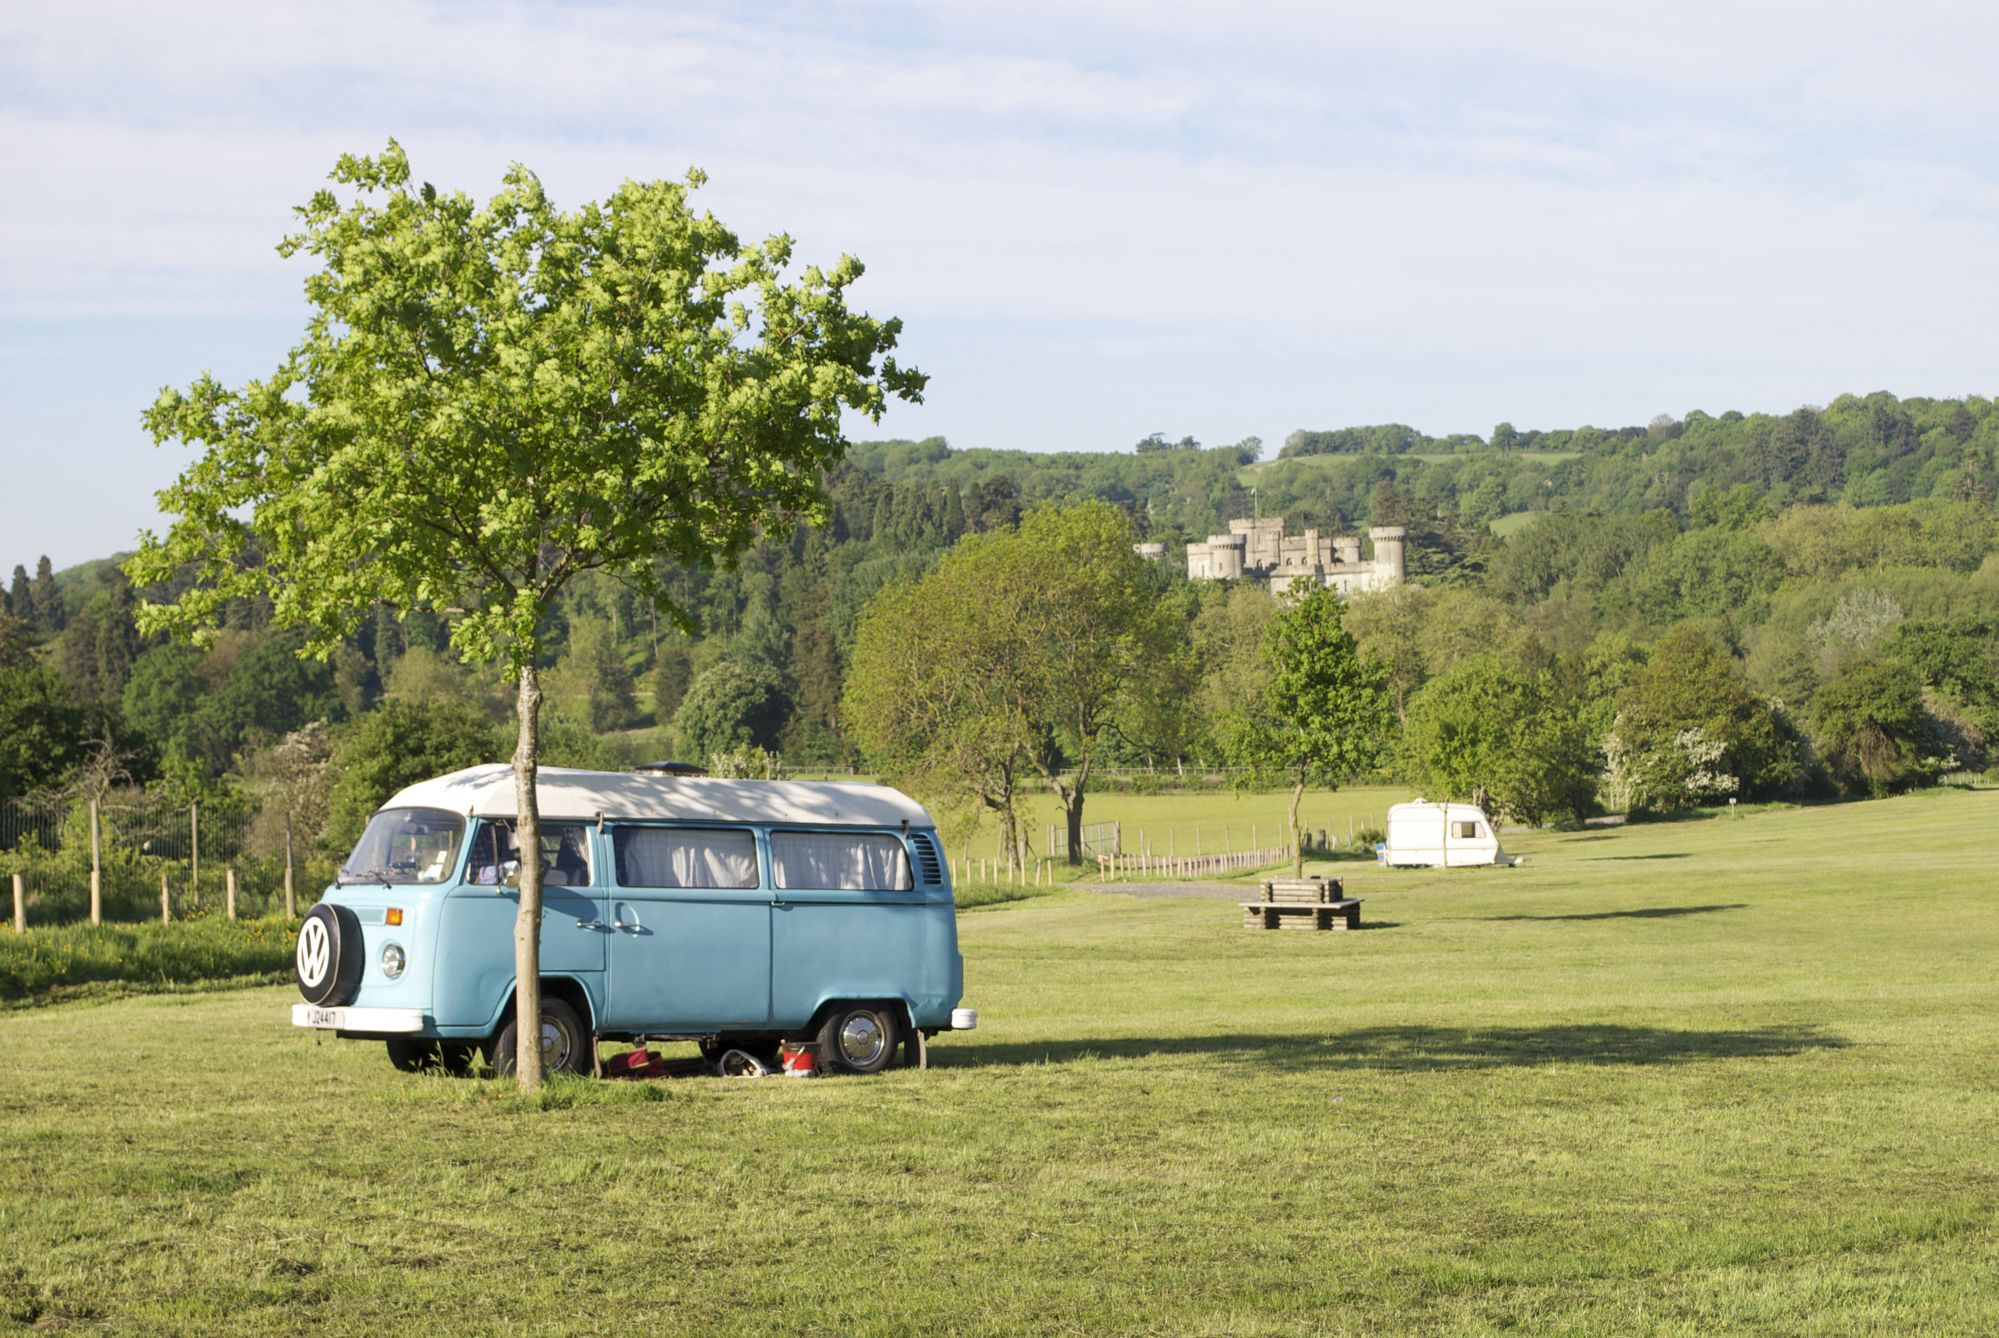 Campsites in the Malvern Hills Area of Outstanding Natural Beauty